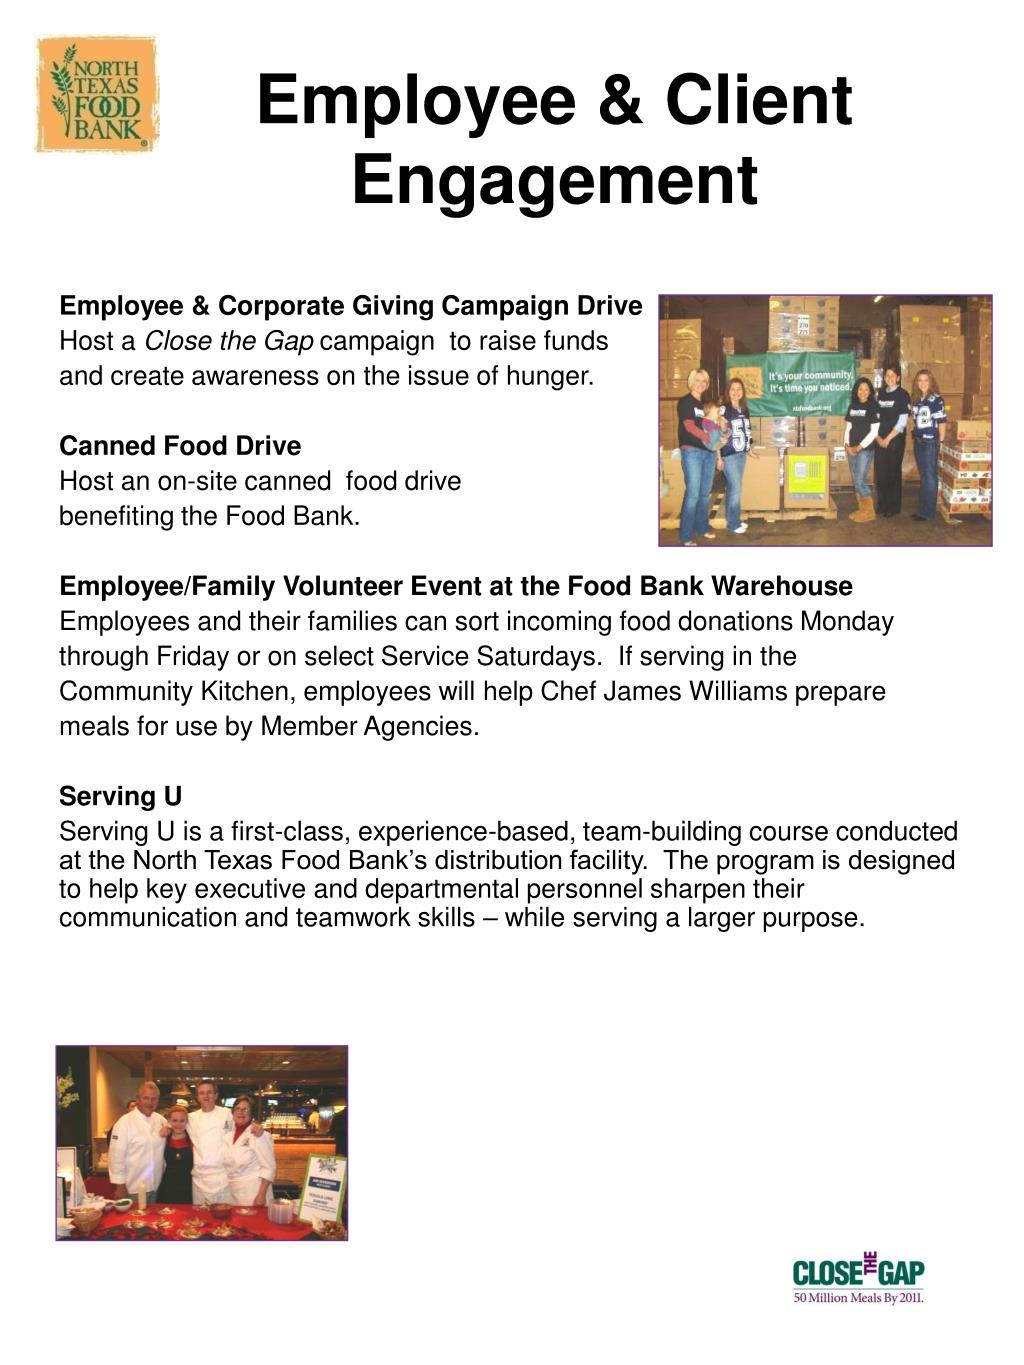 Employee & Client Engagement